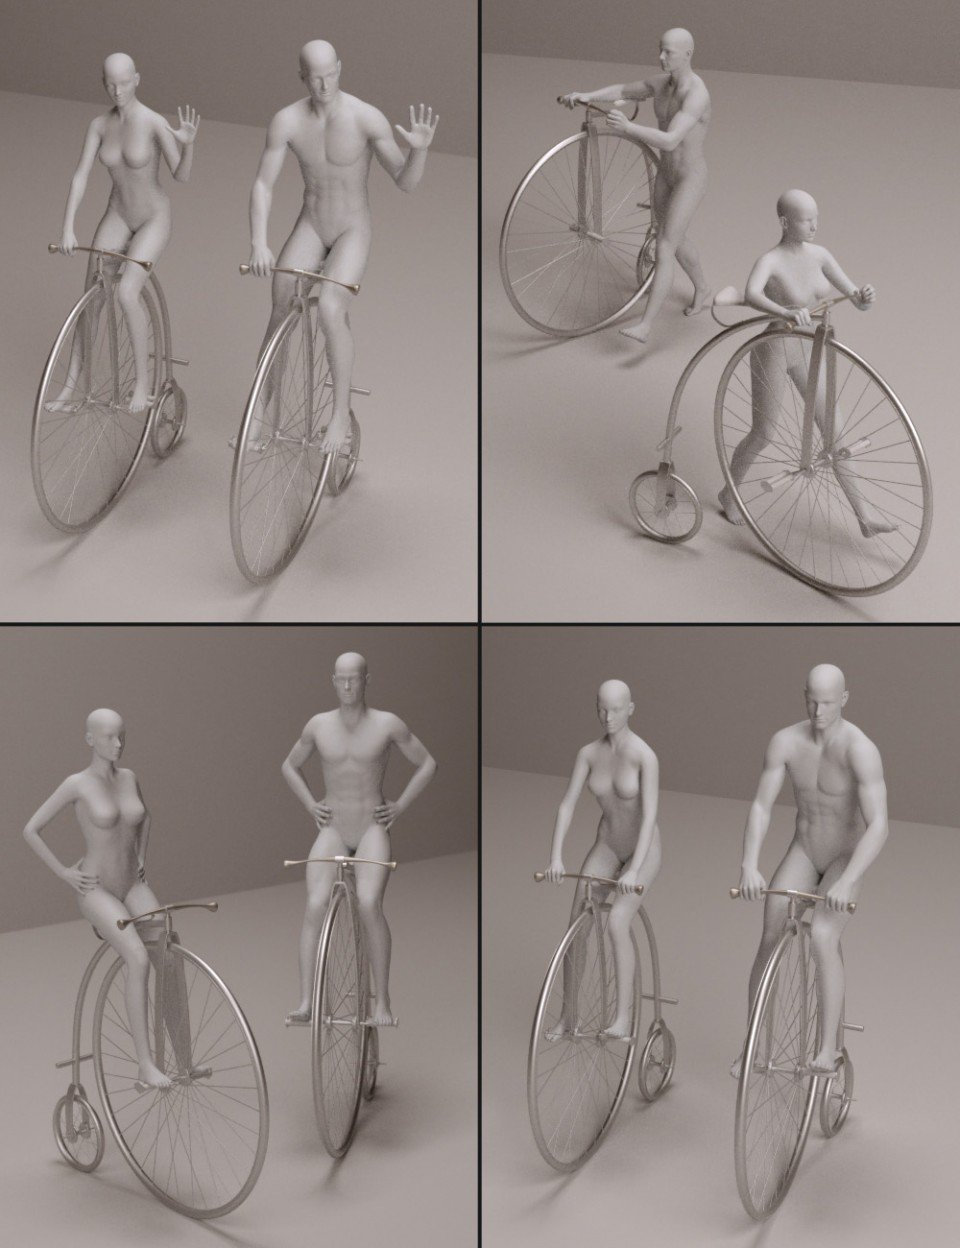 Old Fashioned Bicycle Poses for M5/V5_DAZ3D下载站